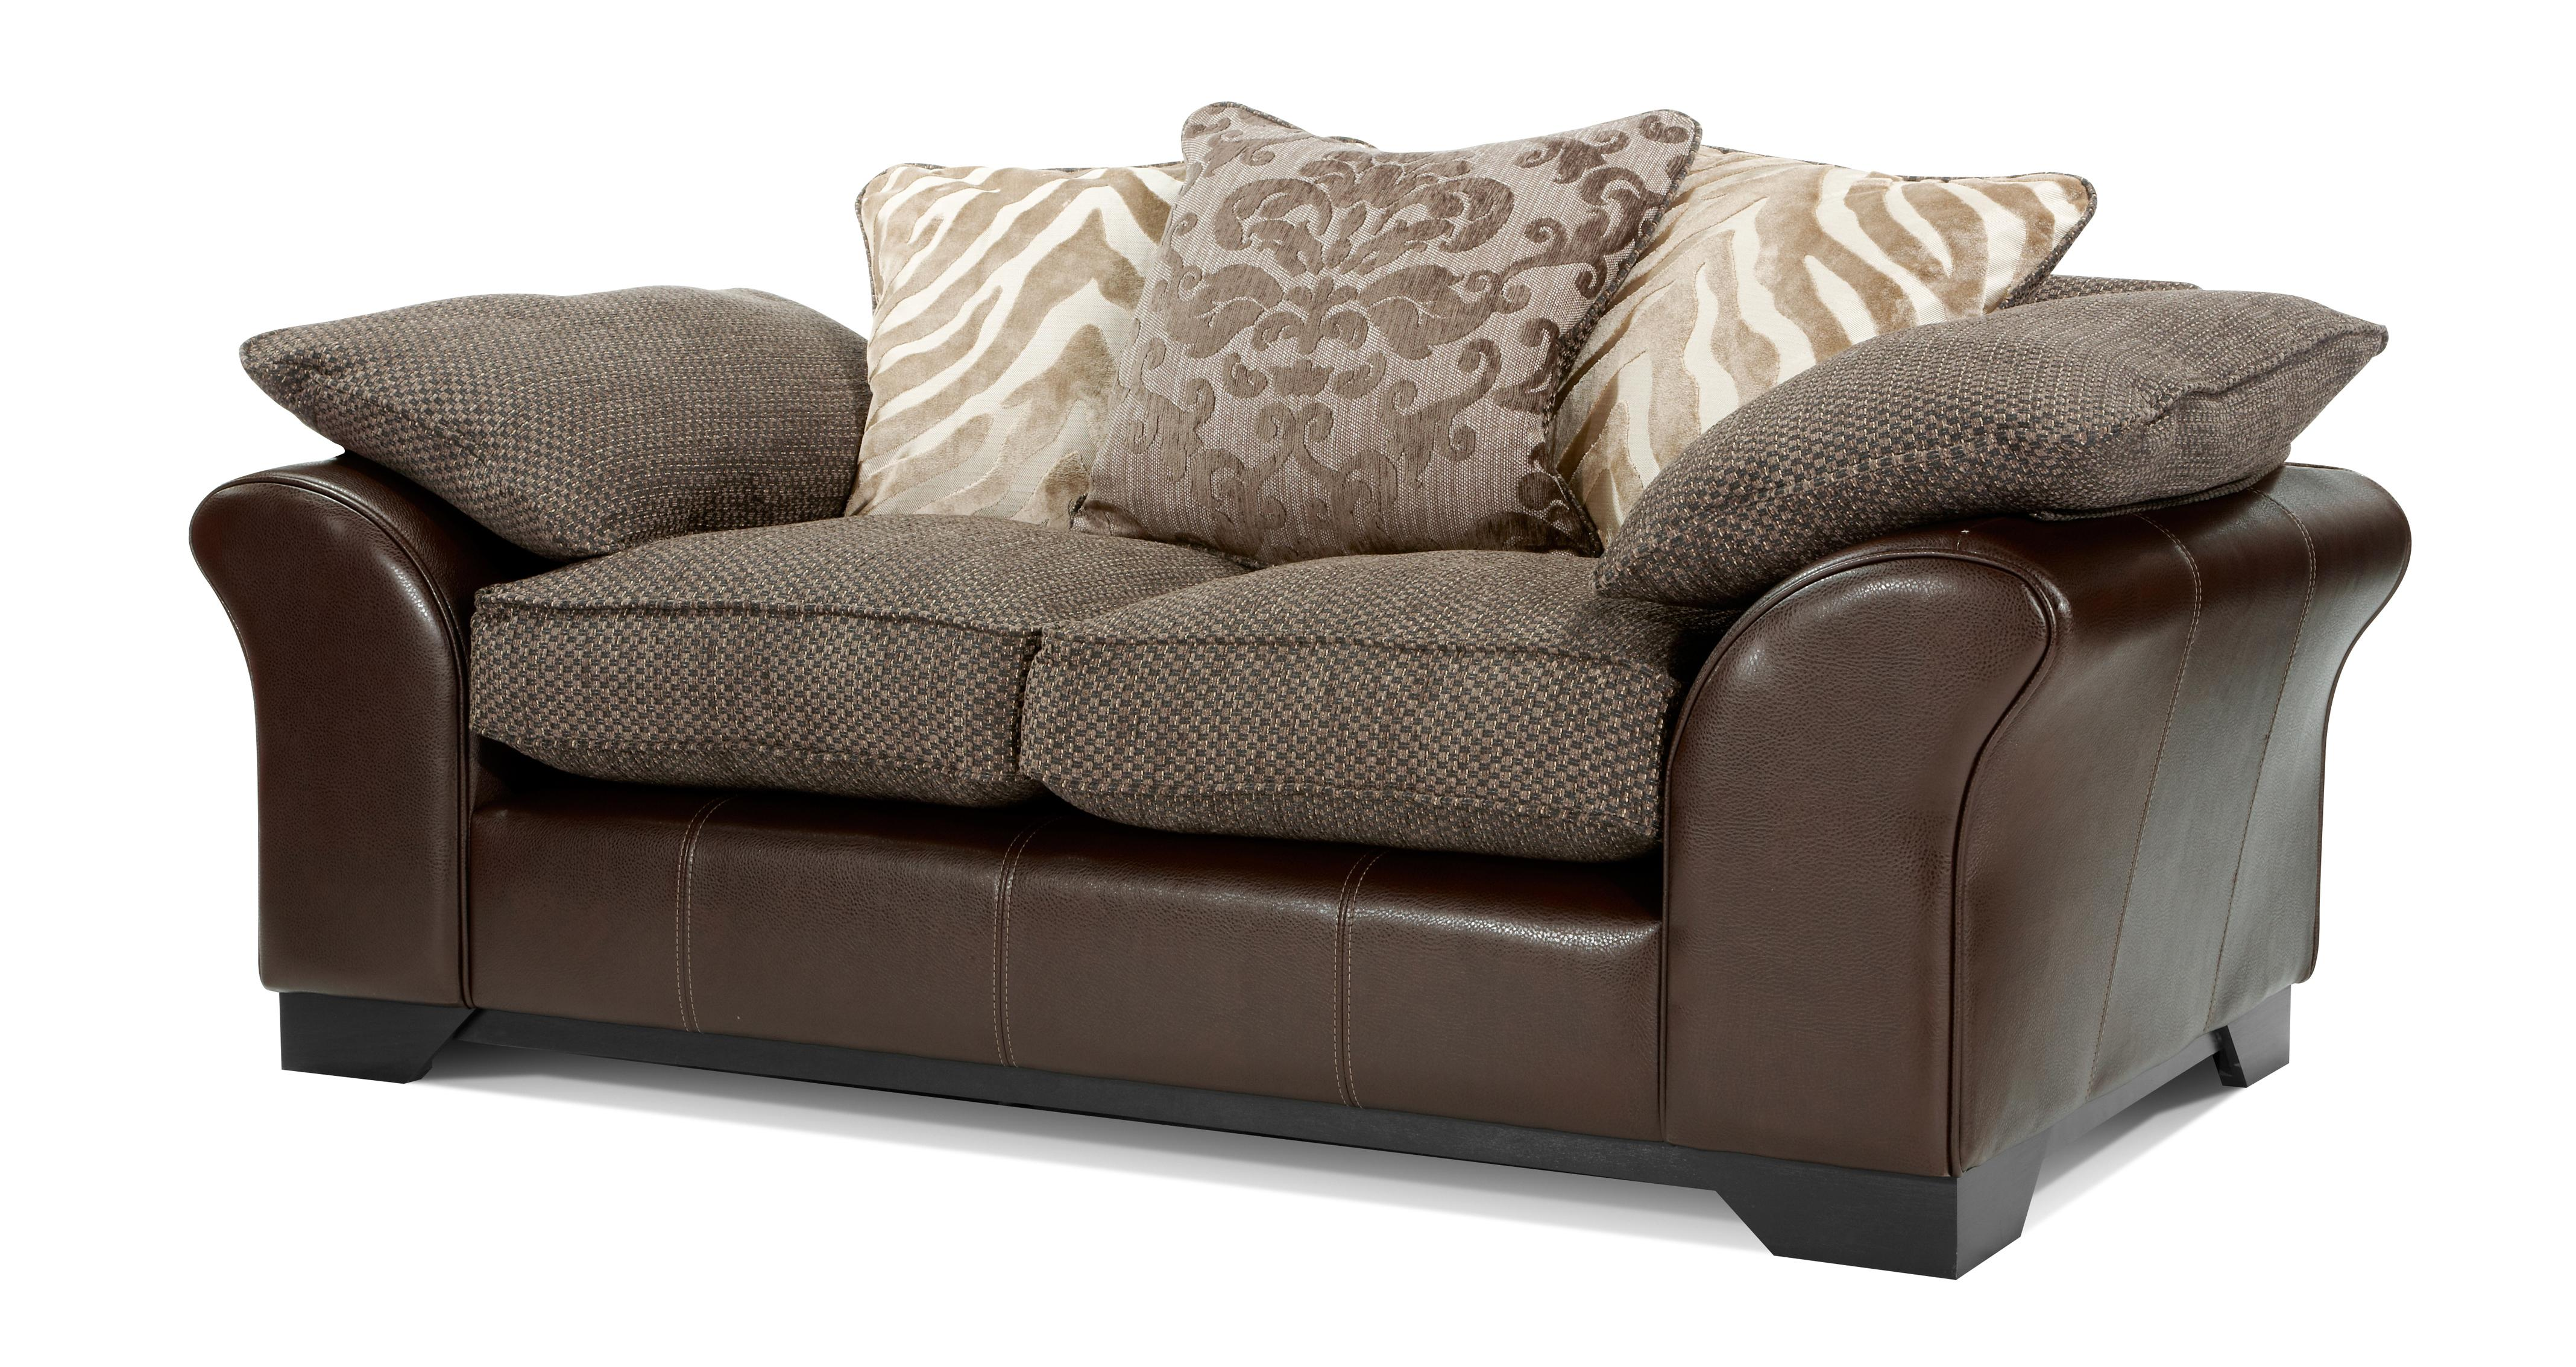 corner sofa dfs martinez dwr reid review martina 4 seater brokeasshome